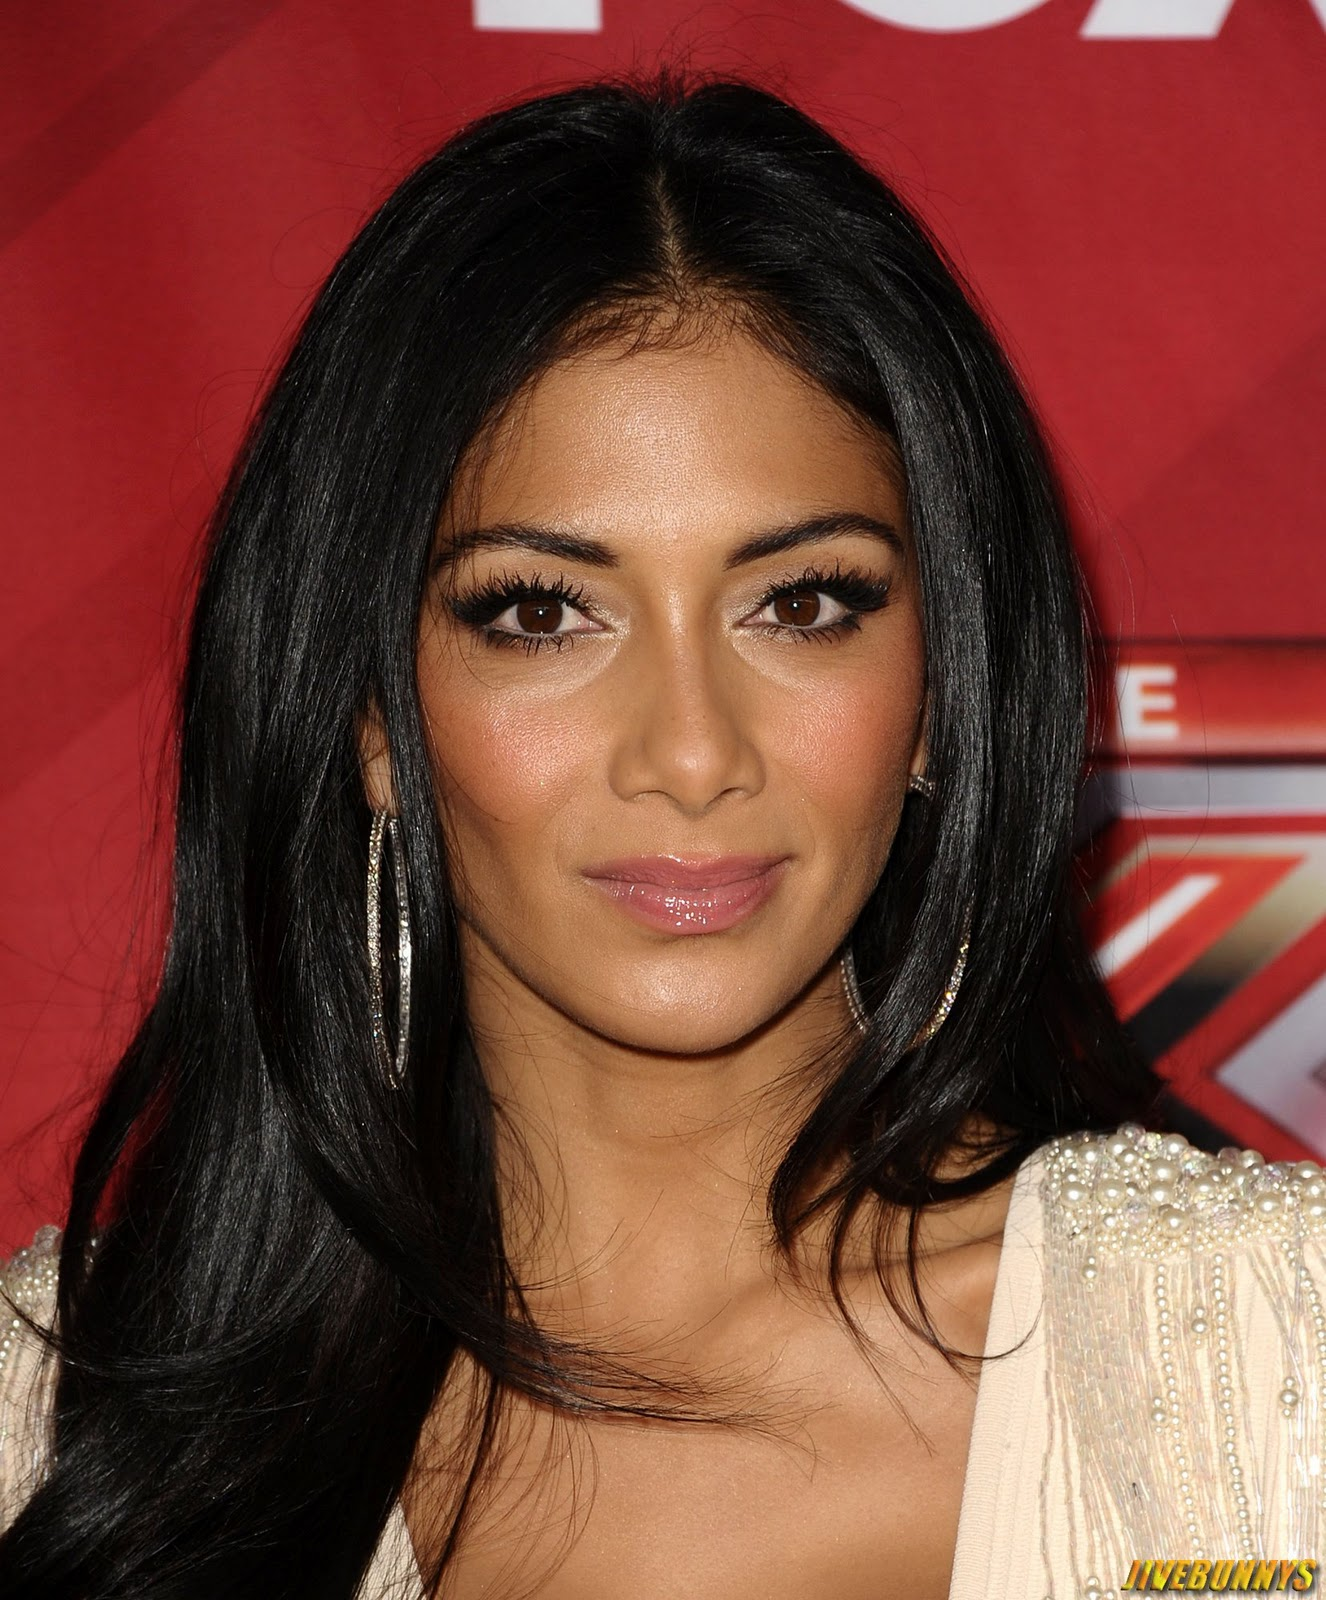 Jivebunnys Female Celebrity Picture Gallery: Nicole Scherzinger ... Beyonce Knowles